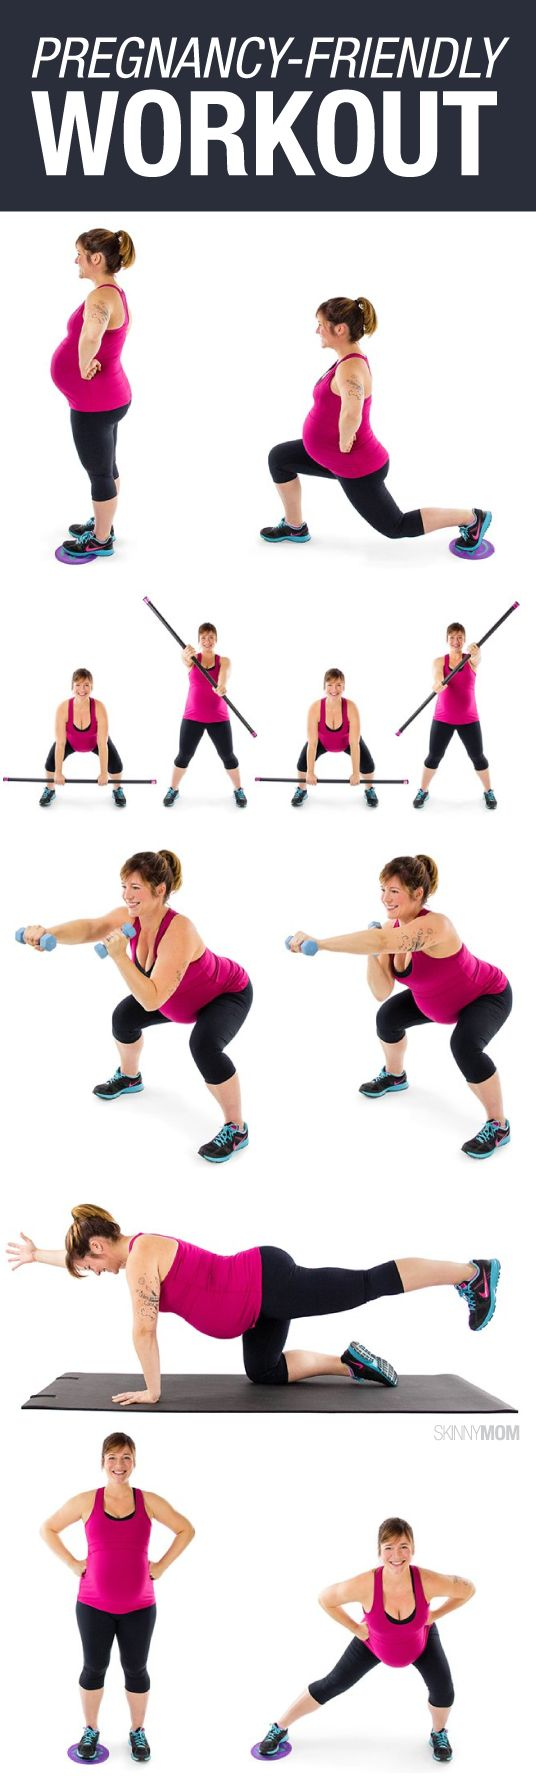 Keep fit and strong with this pregnancy workout!